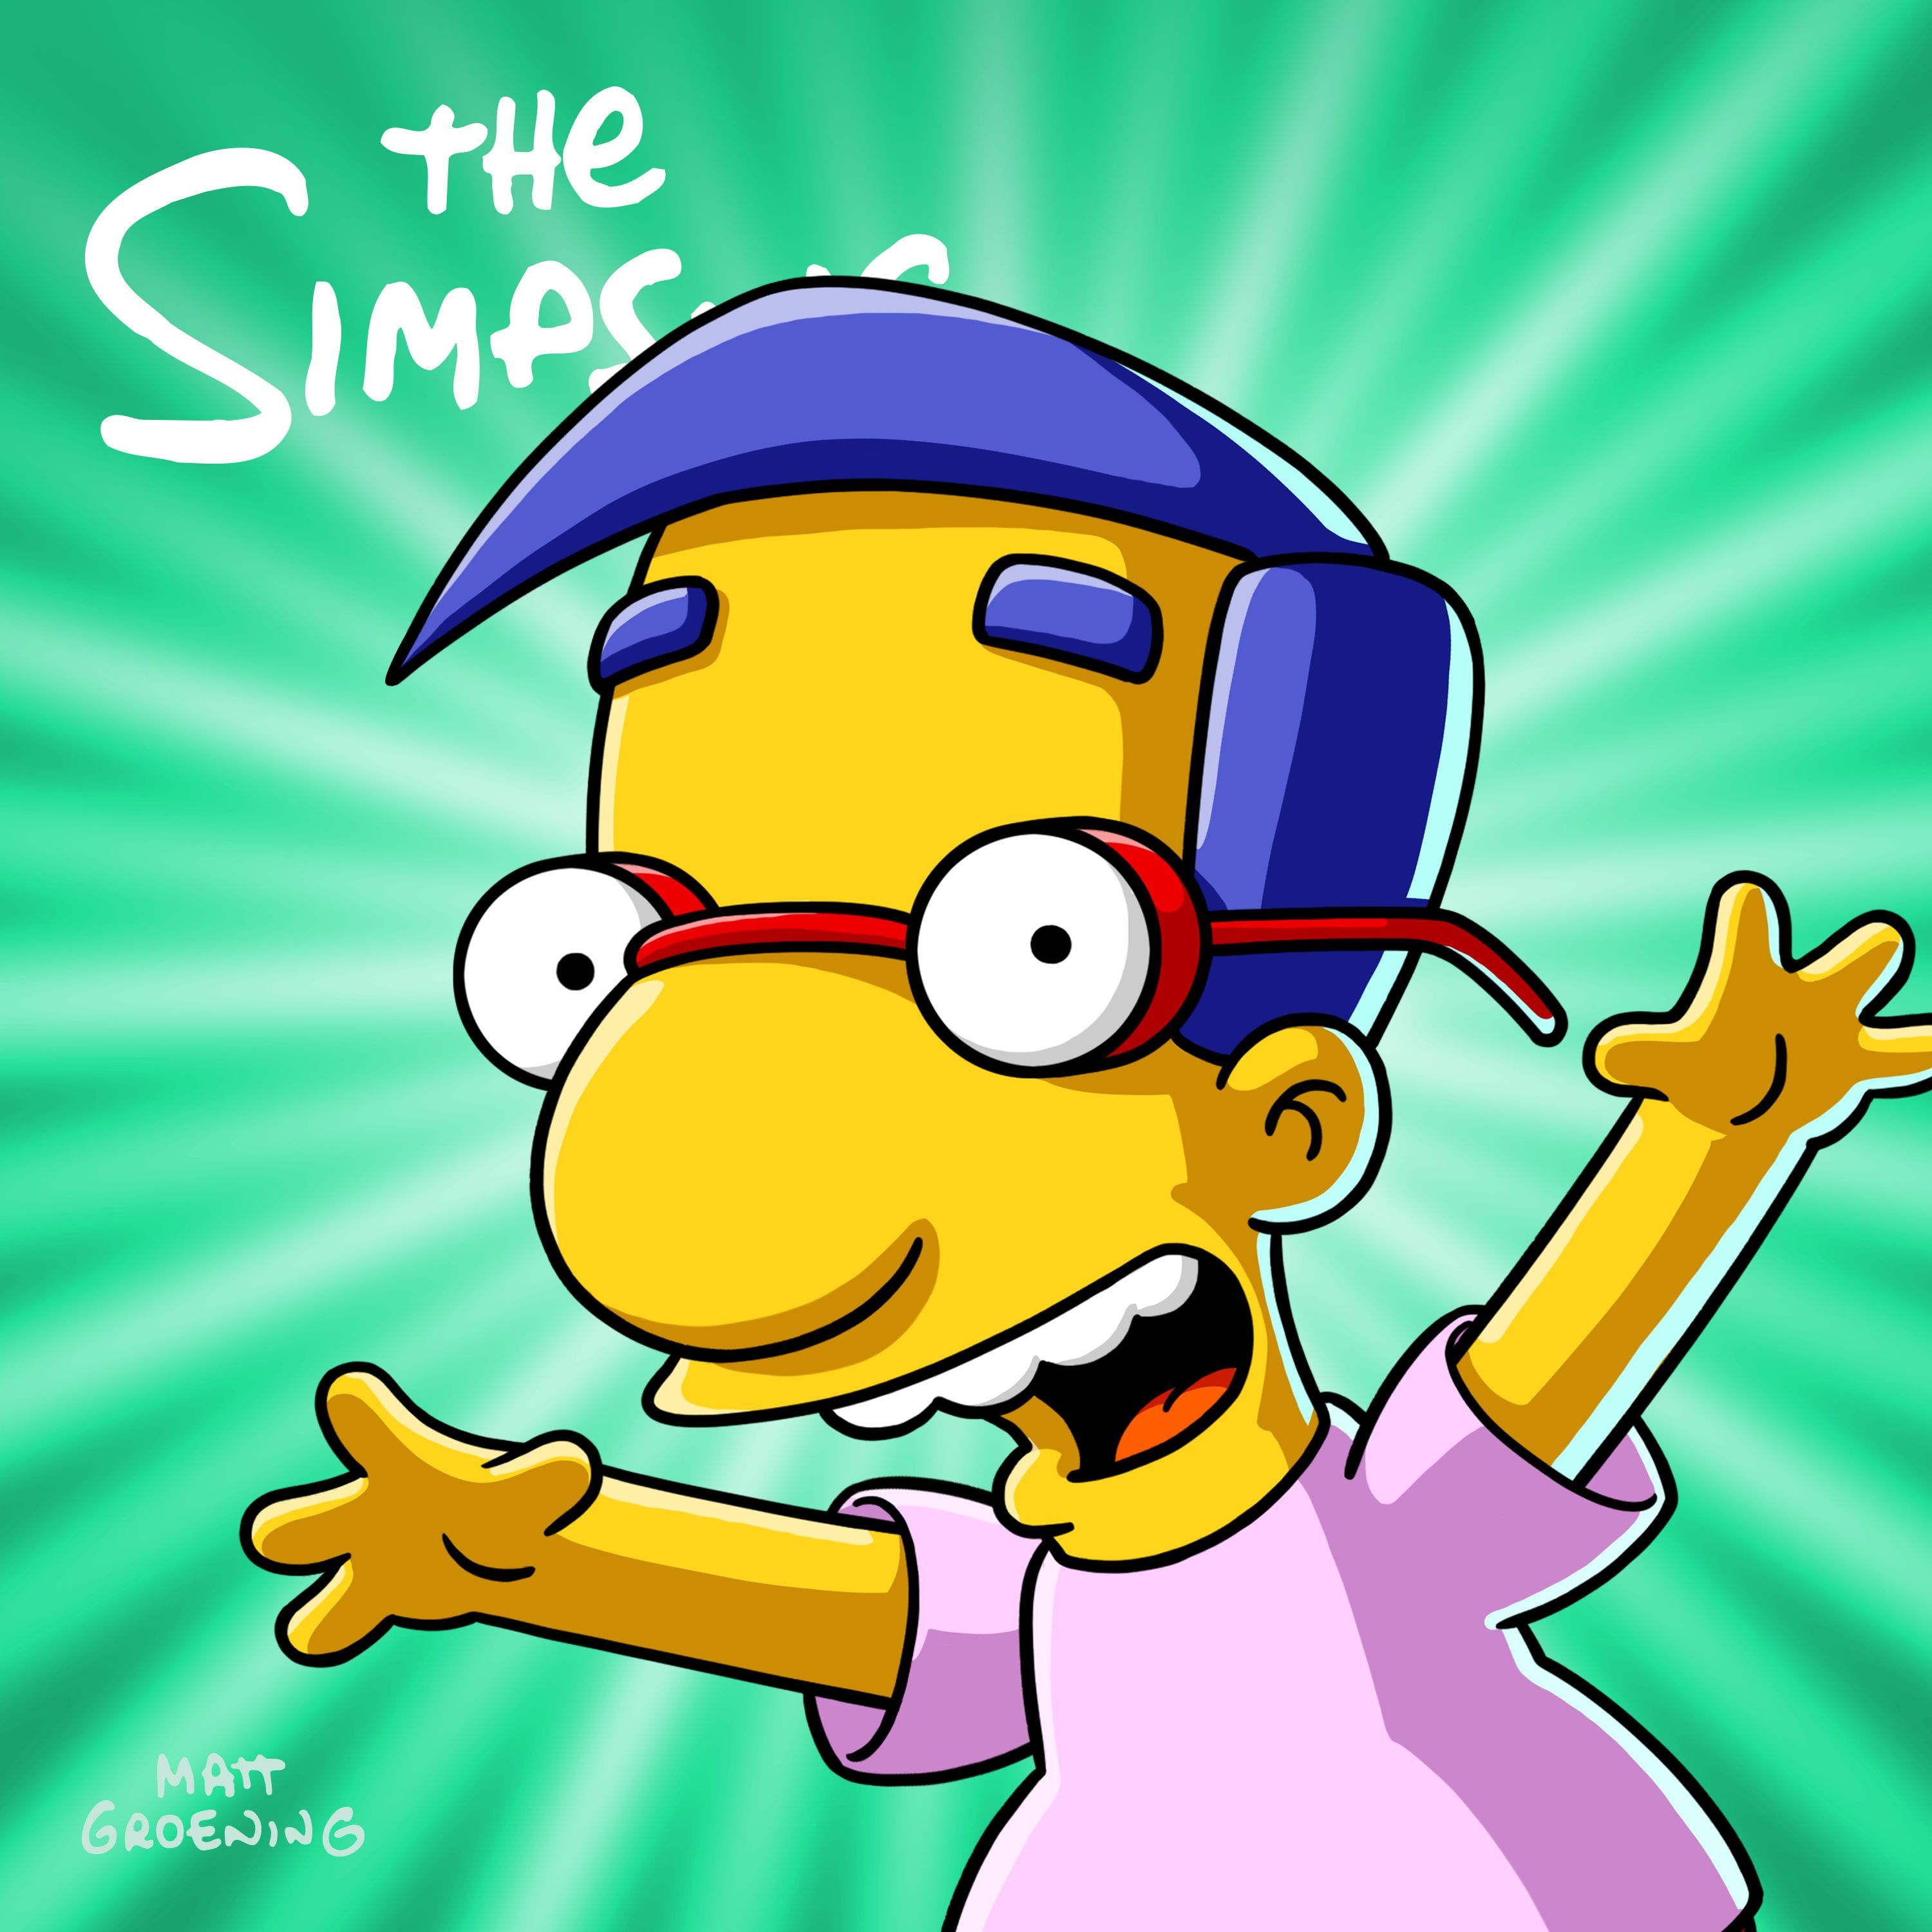 Season 19 Simpsons Wiki Fandom In 2020 The Simpsons The Simpsons Movie Simpsons Characters